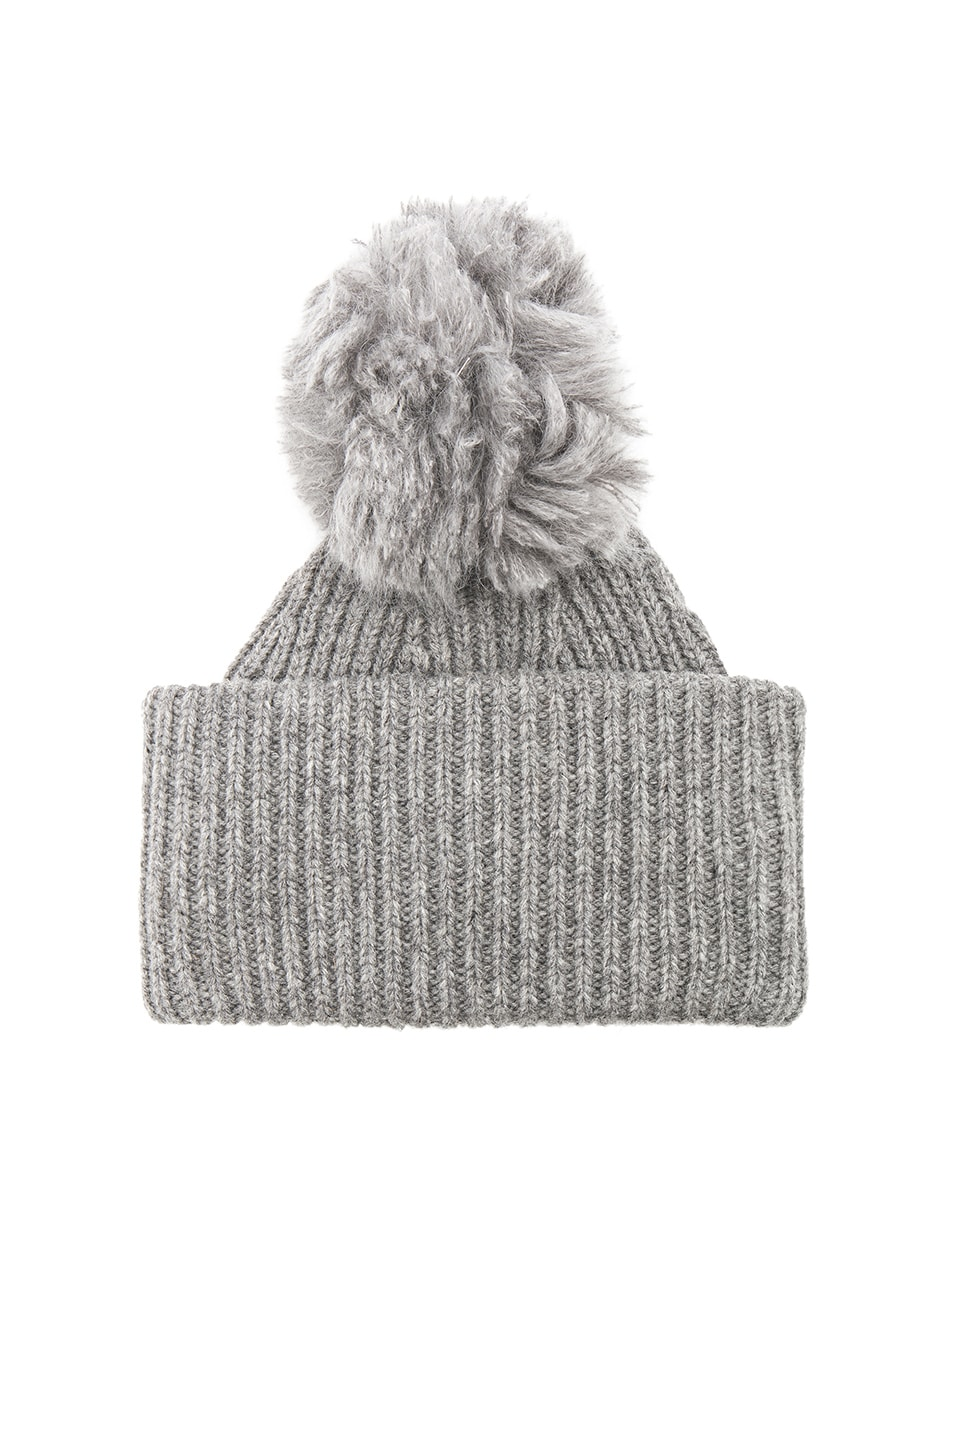 9281c7bad94 Image 1 of Acne Studios Solia Beanie in Steel Grey